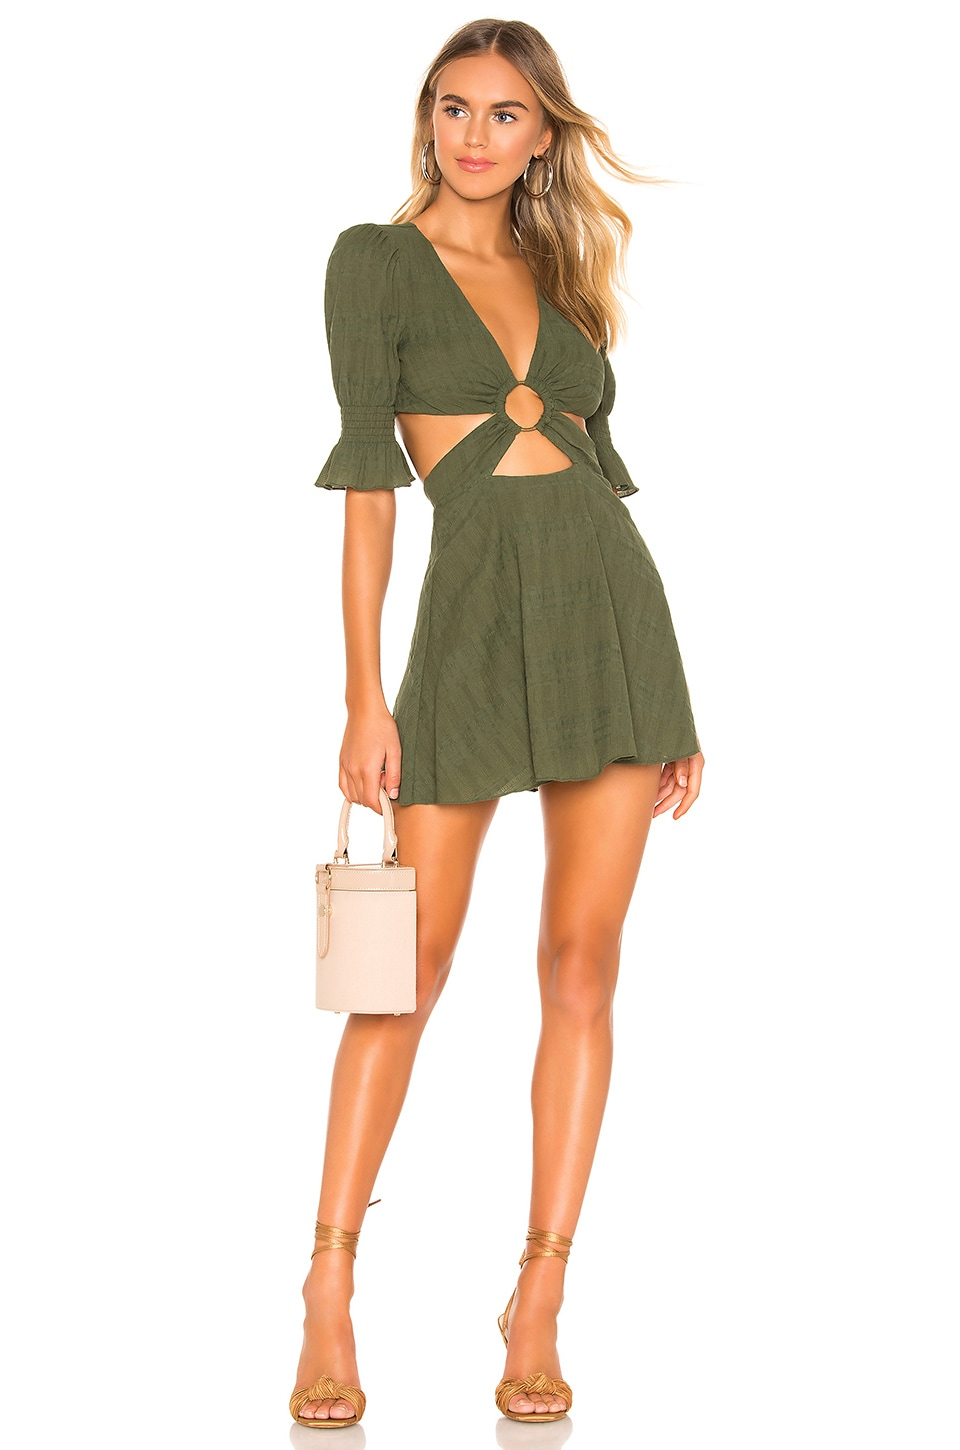 Tularosa Nanette Dress in Moss Green